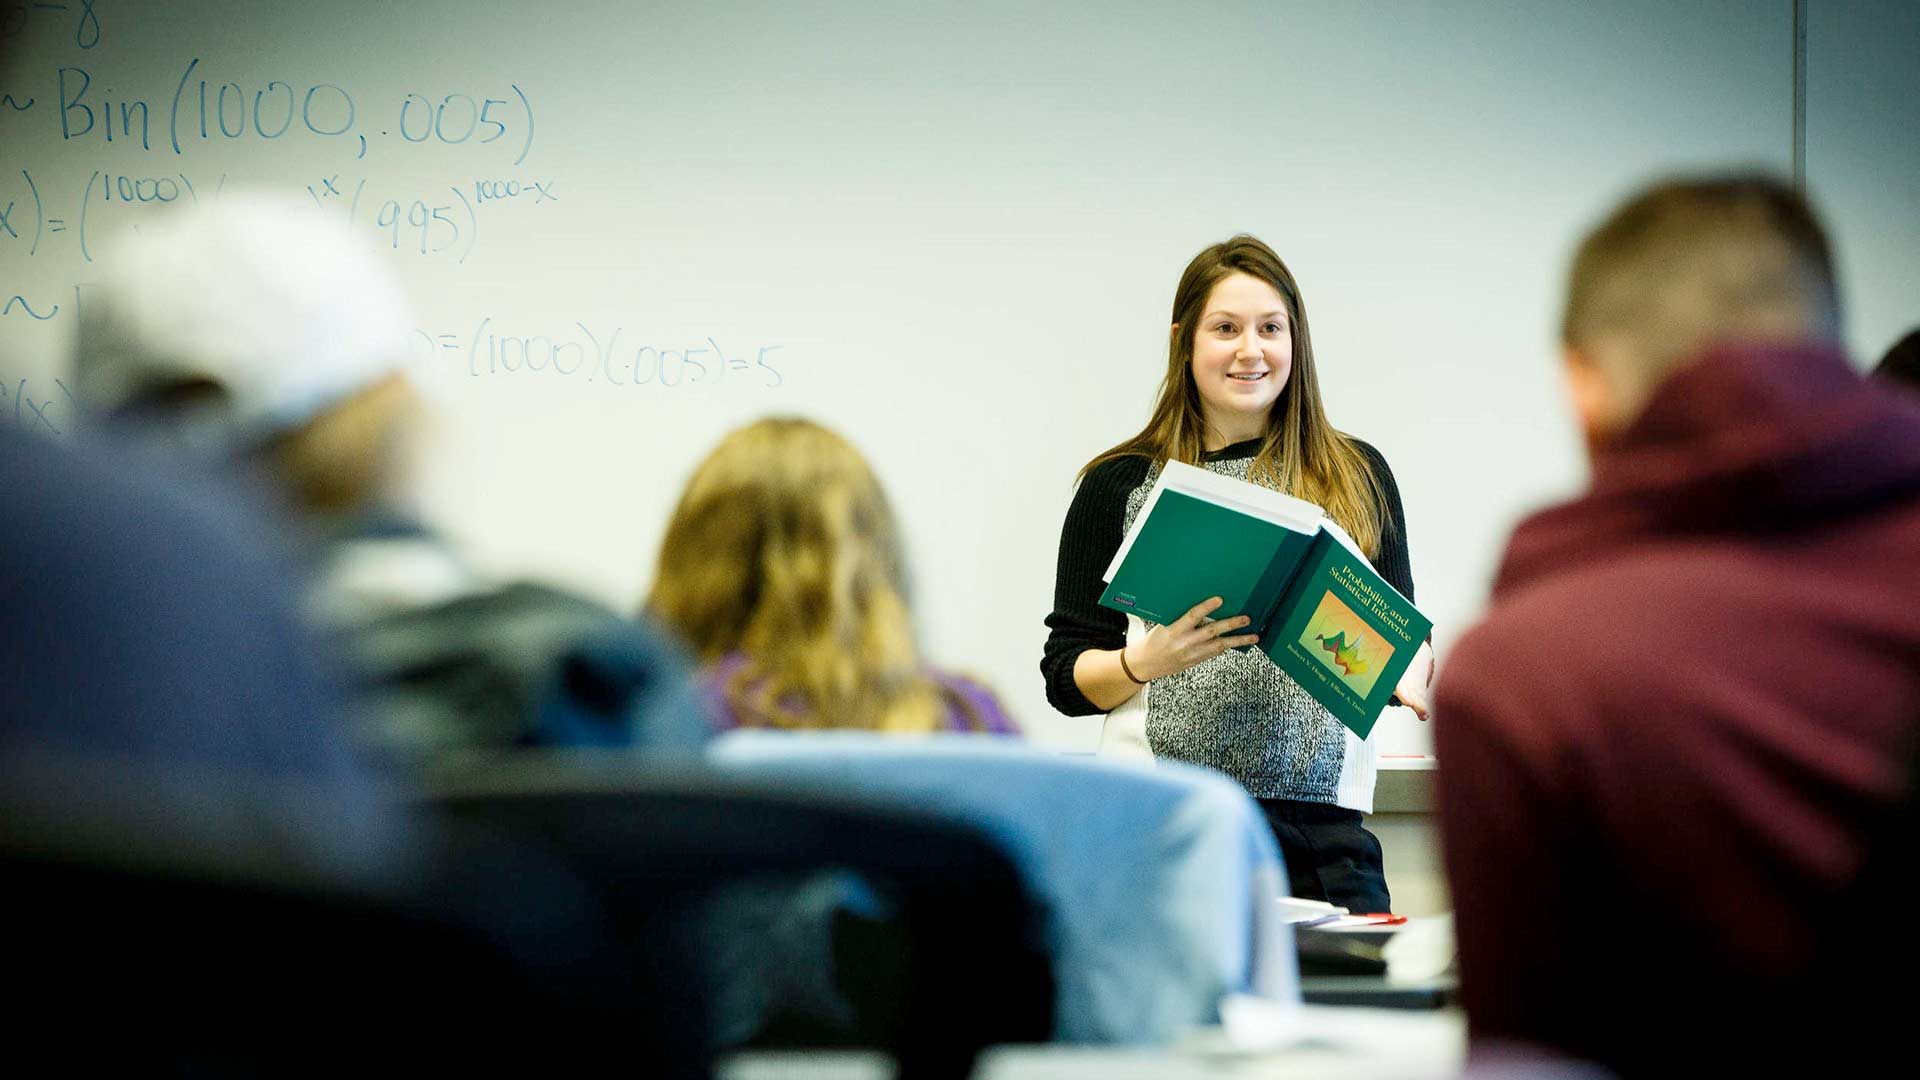 A student holds a textbook while presenting to the class during an actuarial science class.